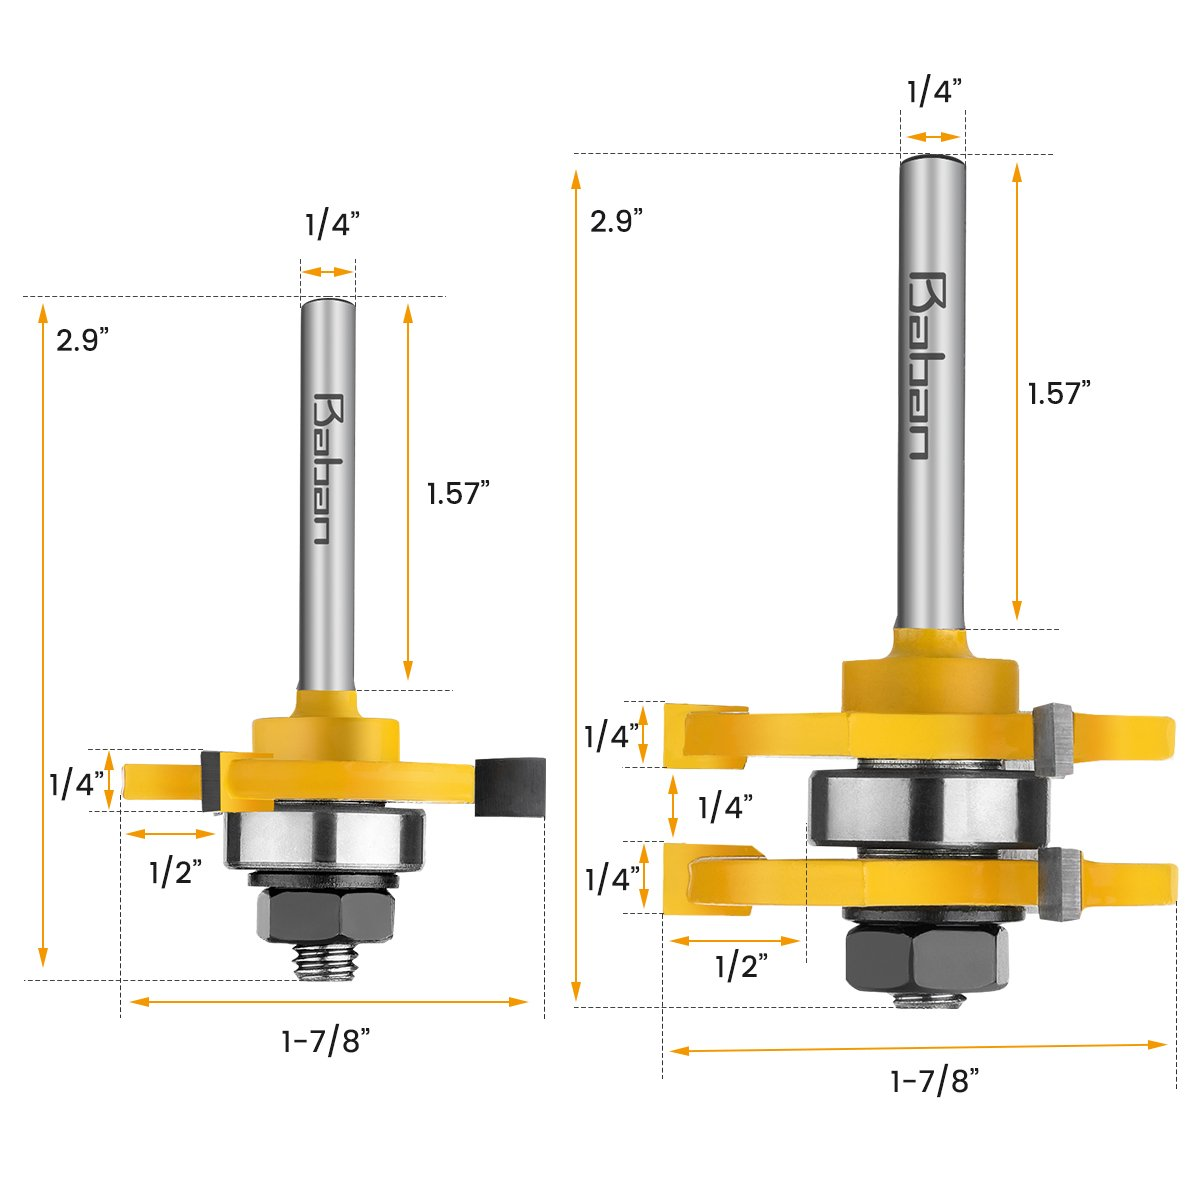 Router Bits, Baban 1/4'' Shank Tongue and Groove Router Bit Set Wood Door Flooring 3 Teeth Adjustable Routers for Woodworking Milling Cutter Tool For Router Table/Base Router, Kitchen/Bathroom/Cabinets by Baban (Image #2)